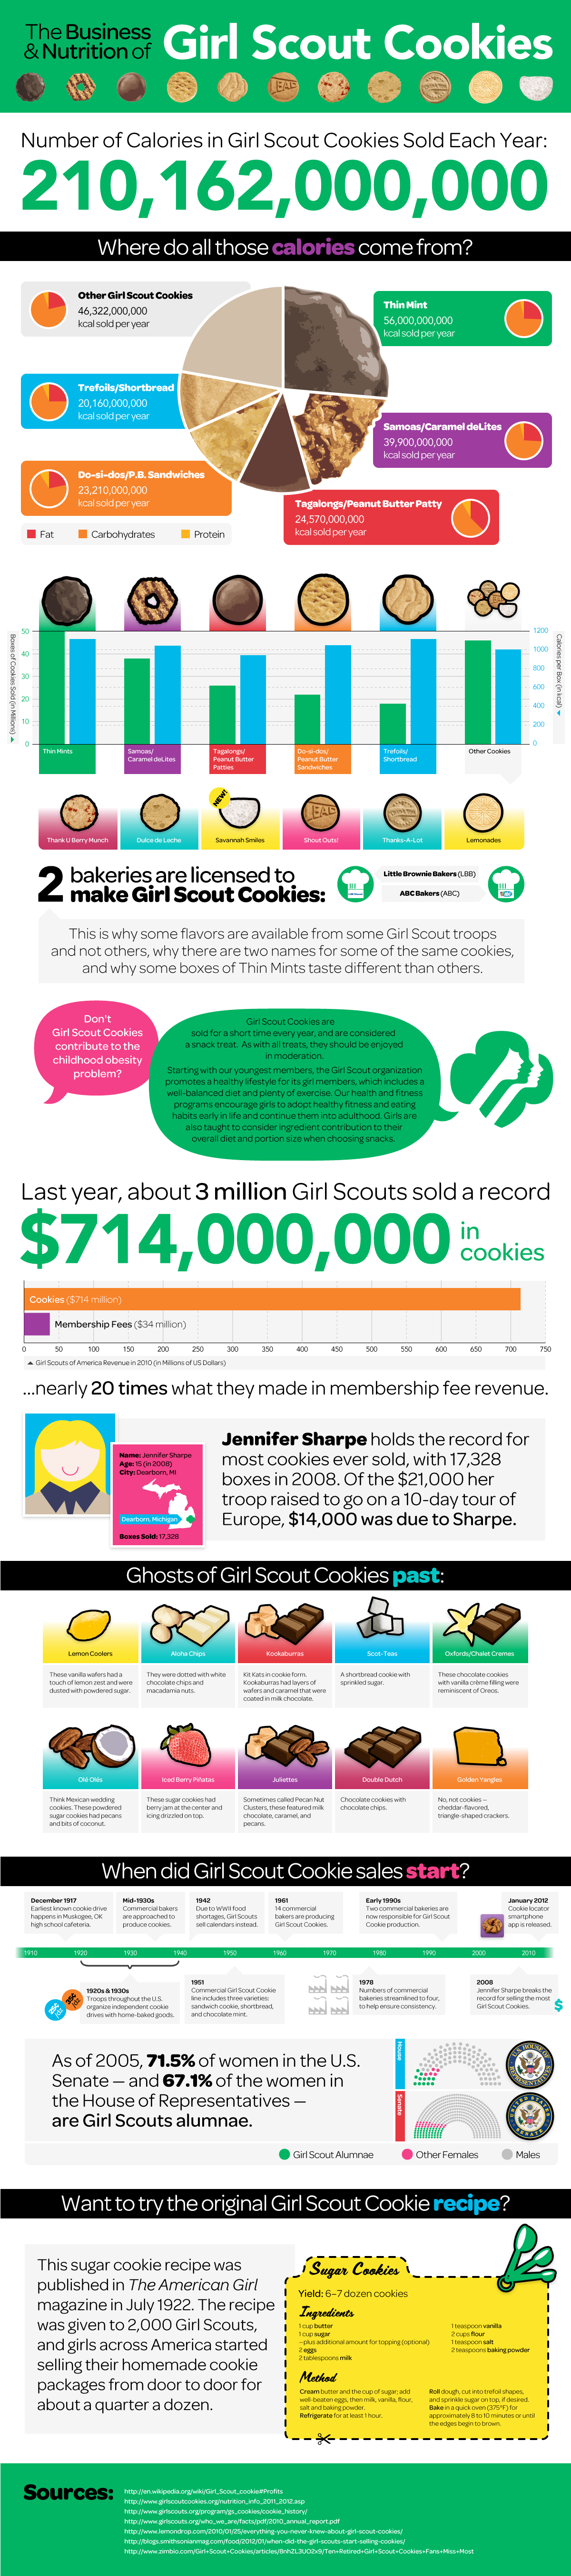 infographic the big business of girl scout cookies